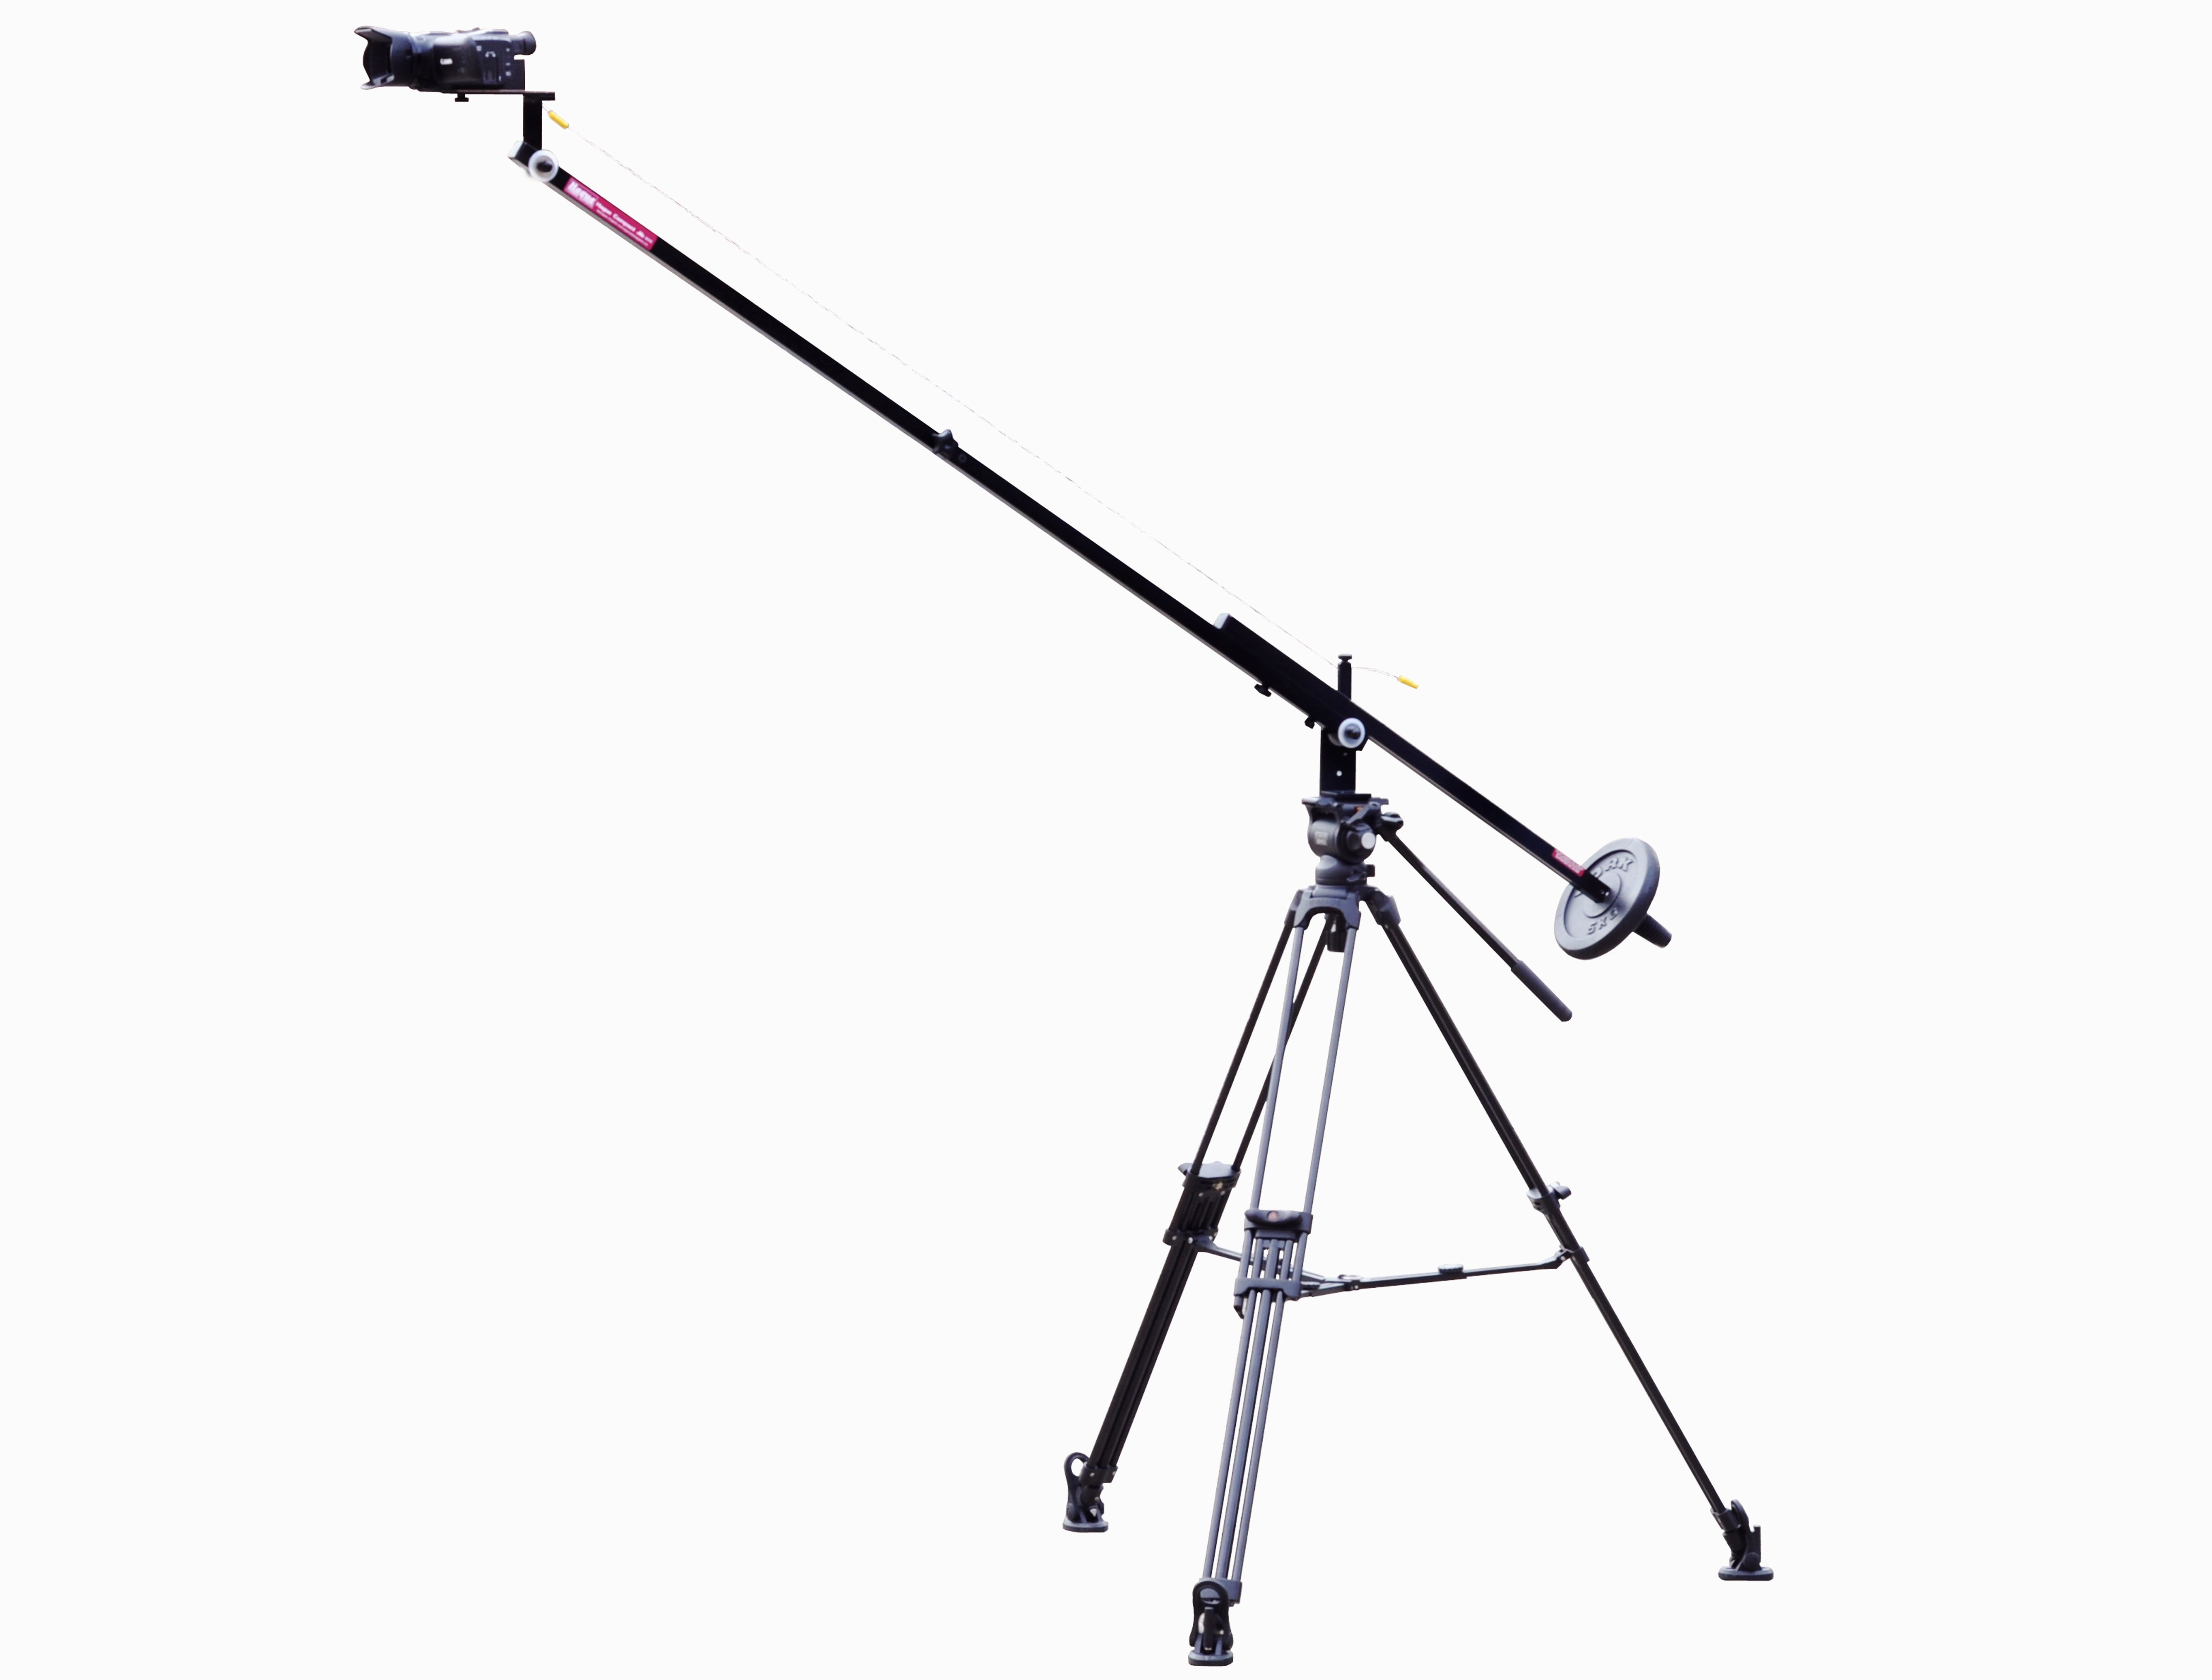 The New Hague K11 Compact Camera Crane Available Now